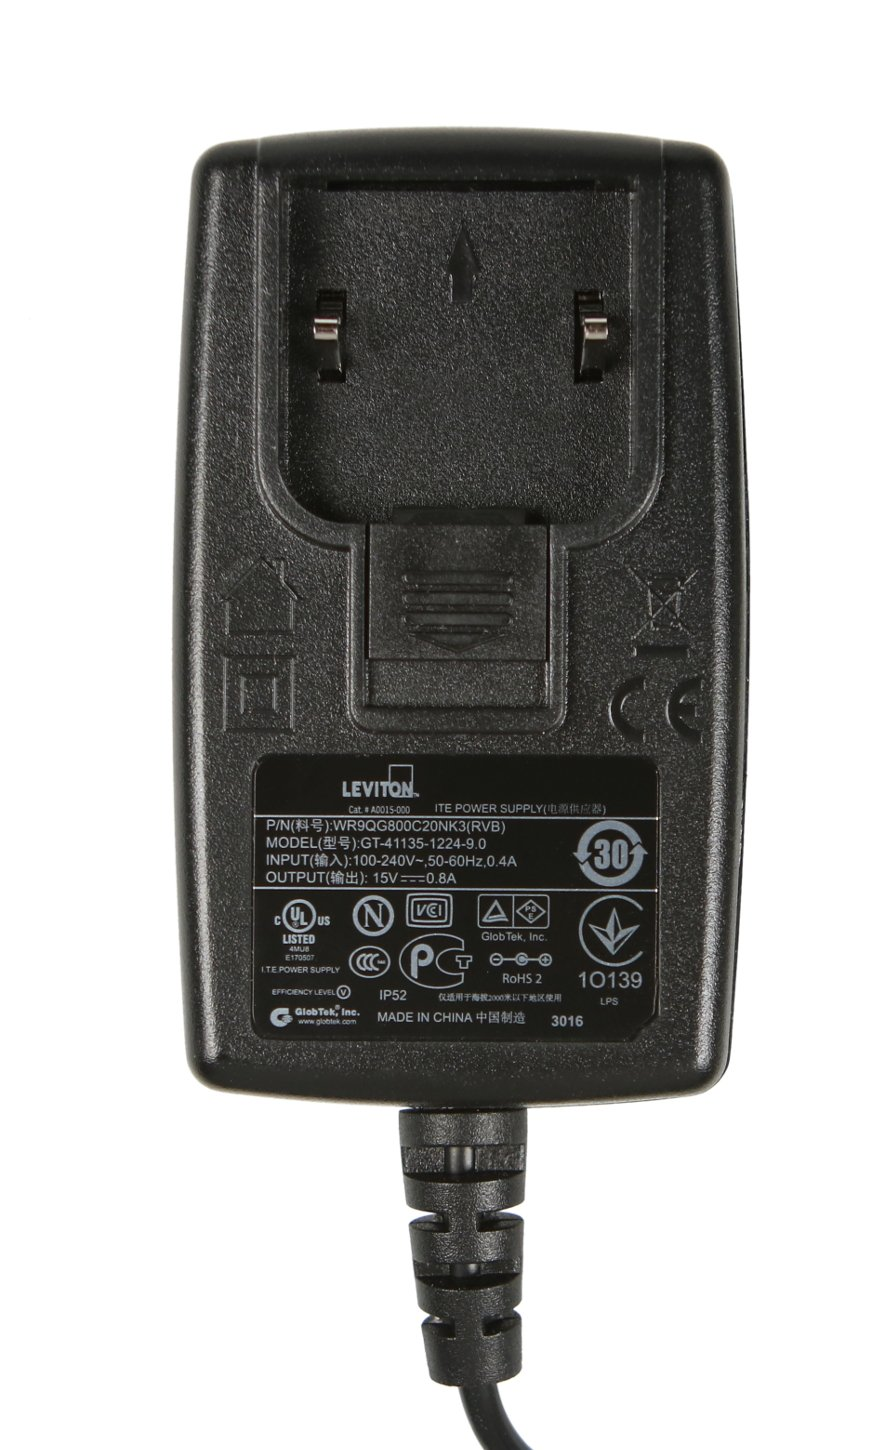 12v AC Adaptor for MC 7000 and MC 7016